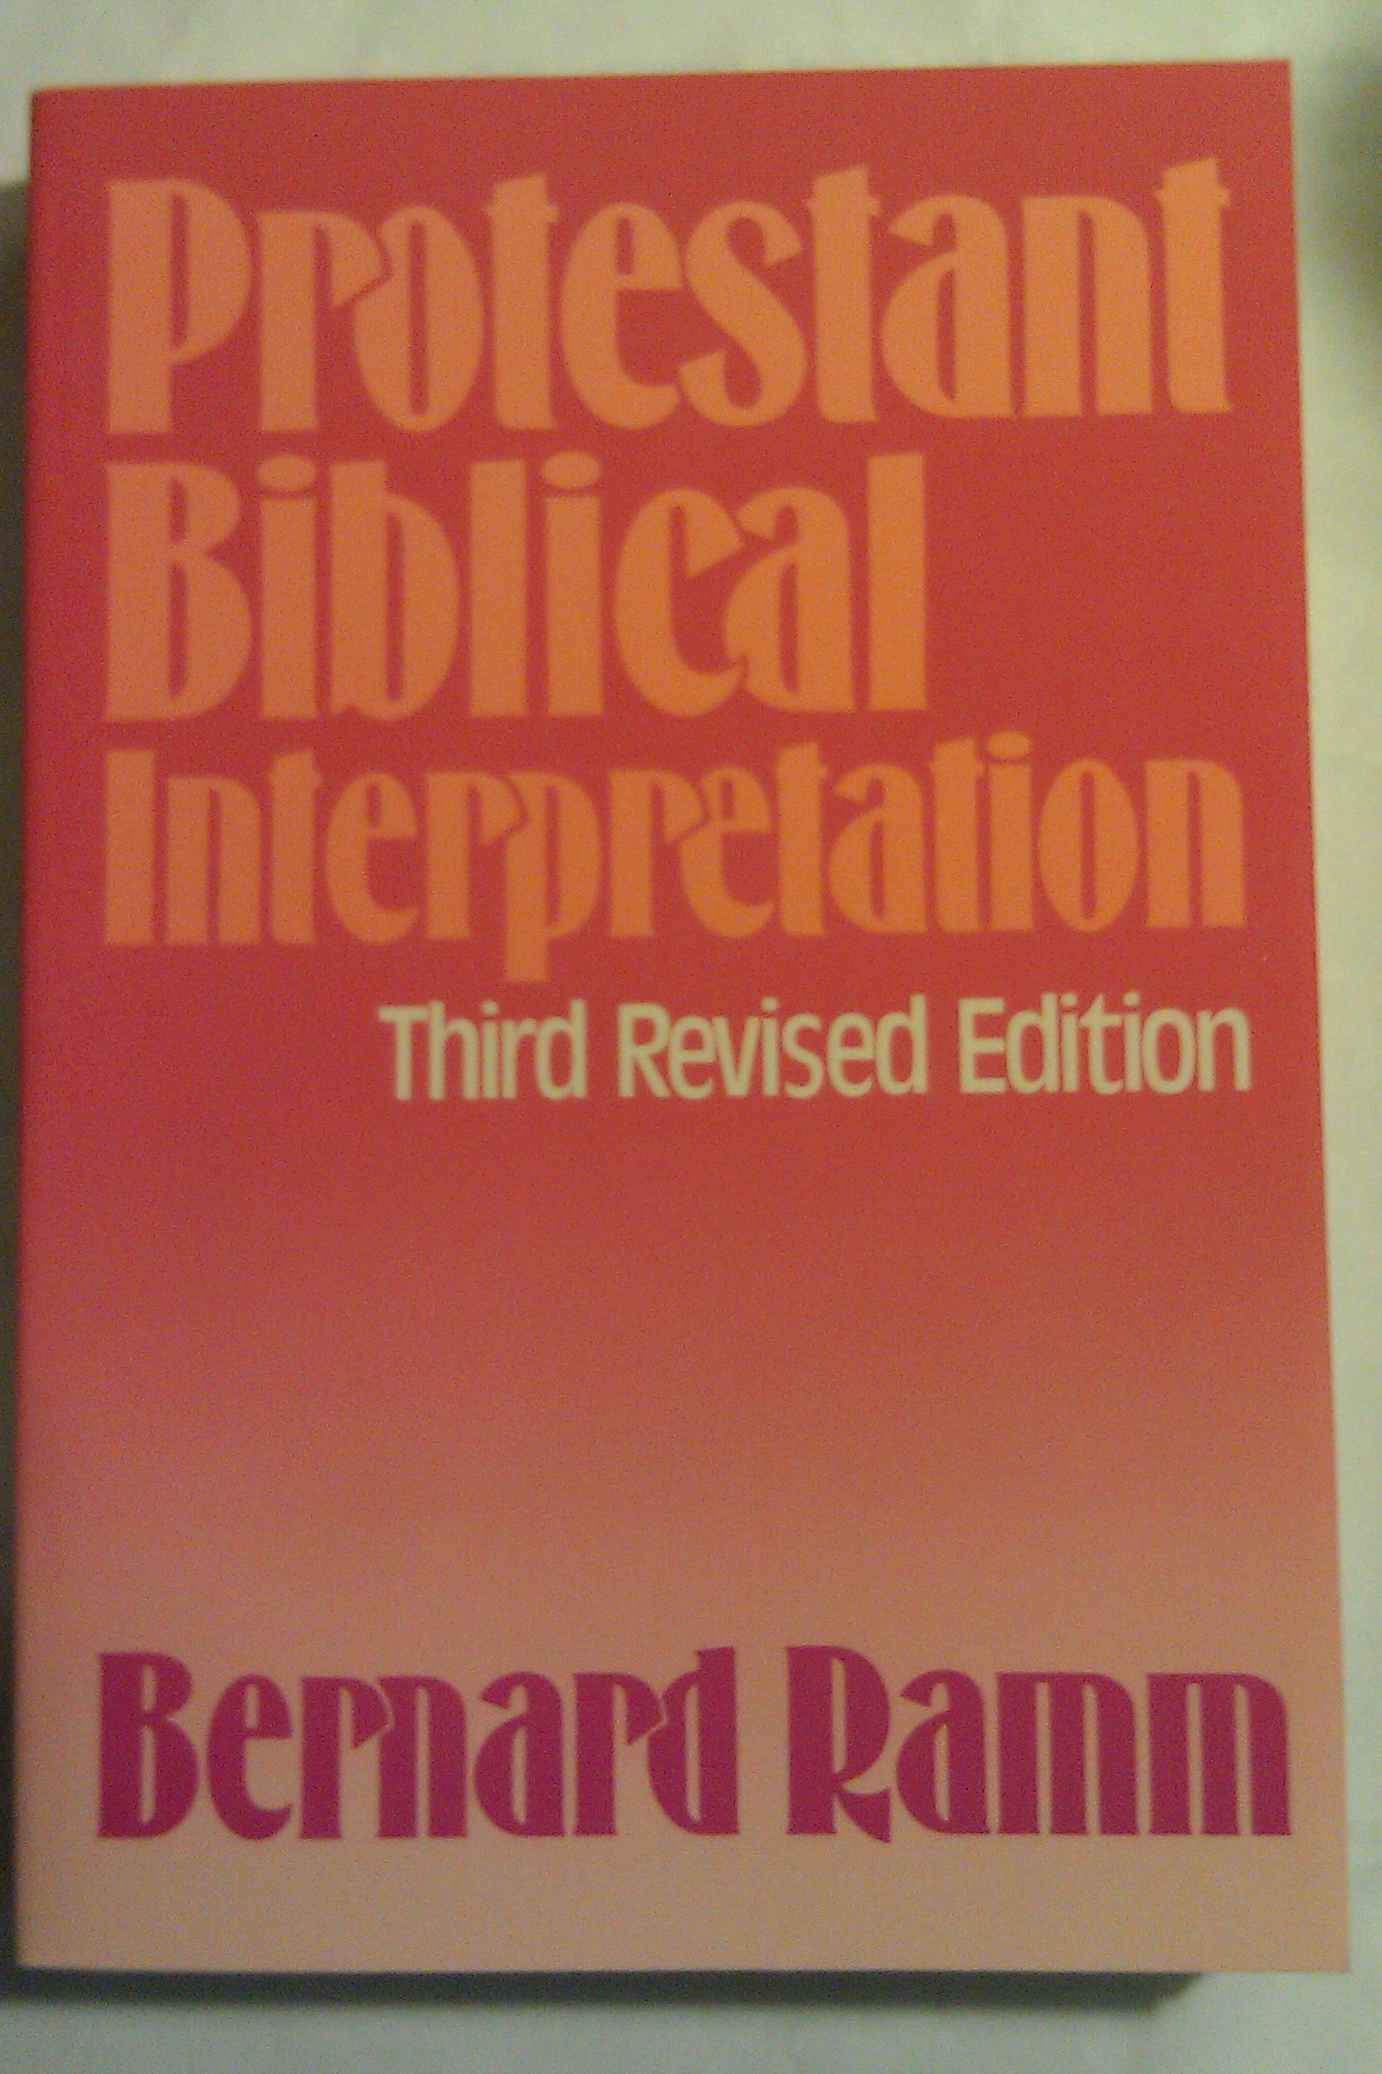 Image for Protestant Biblical Interpretation